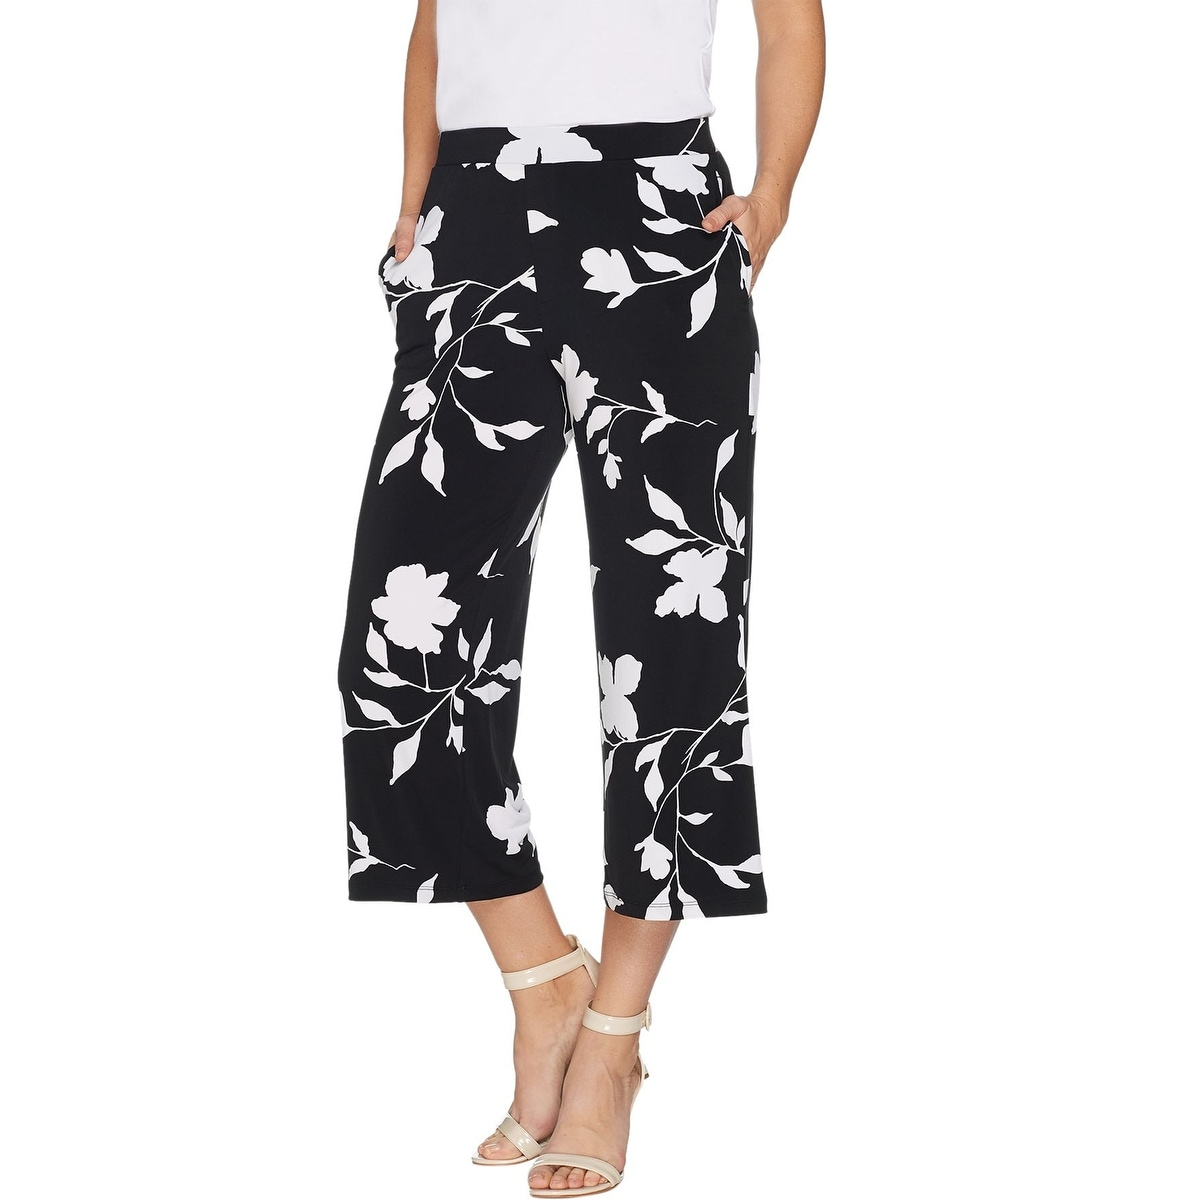 Susan Graver Ultra Stretch Pull-On Crop Pants Black 12 NEW A288148